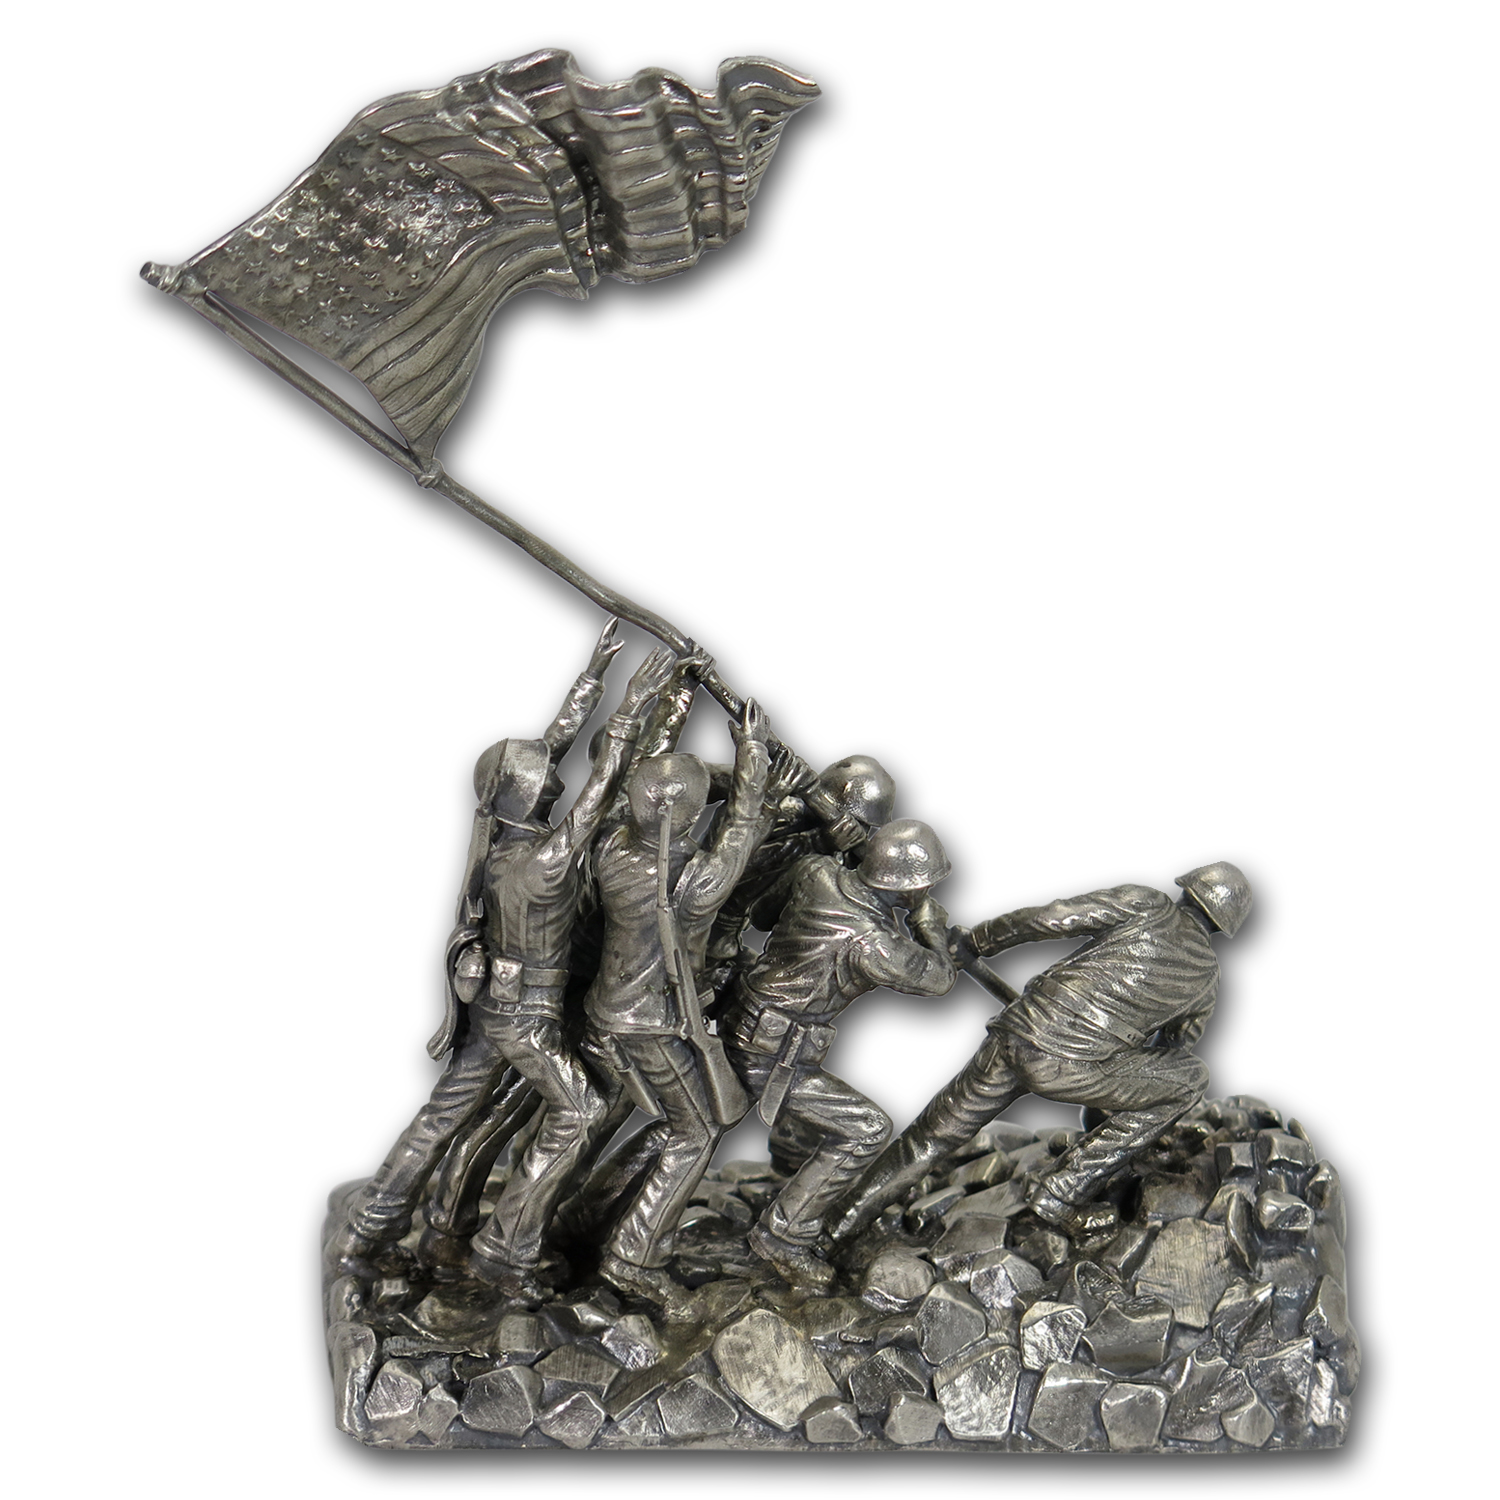 30 oz Silver Antique Statue - Raising the Flag on Iwo Jima